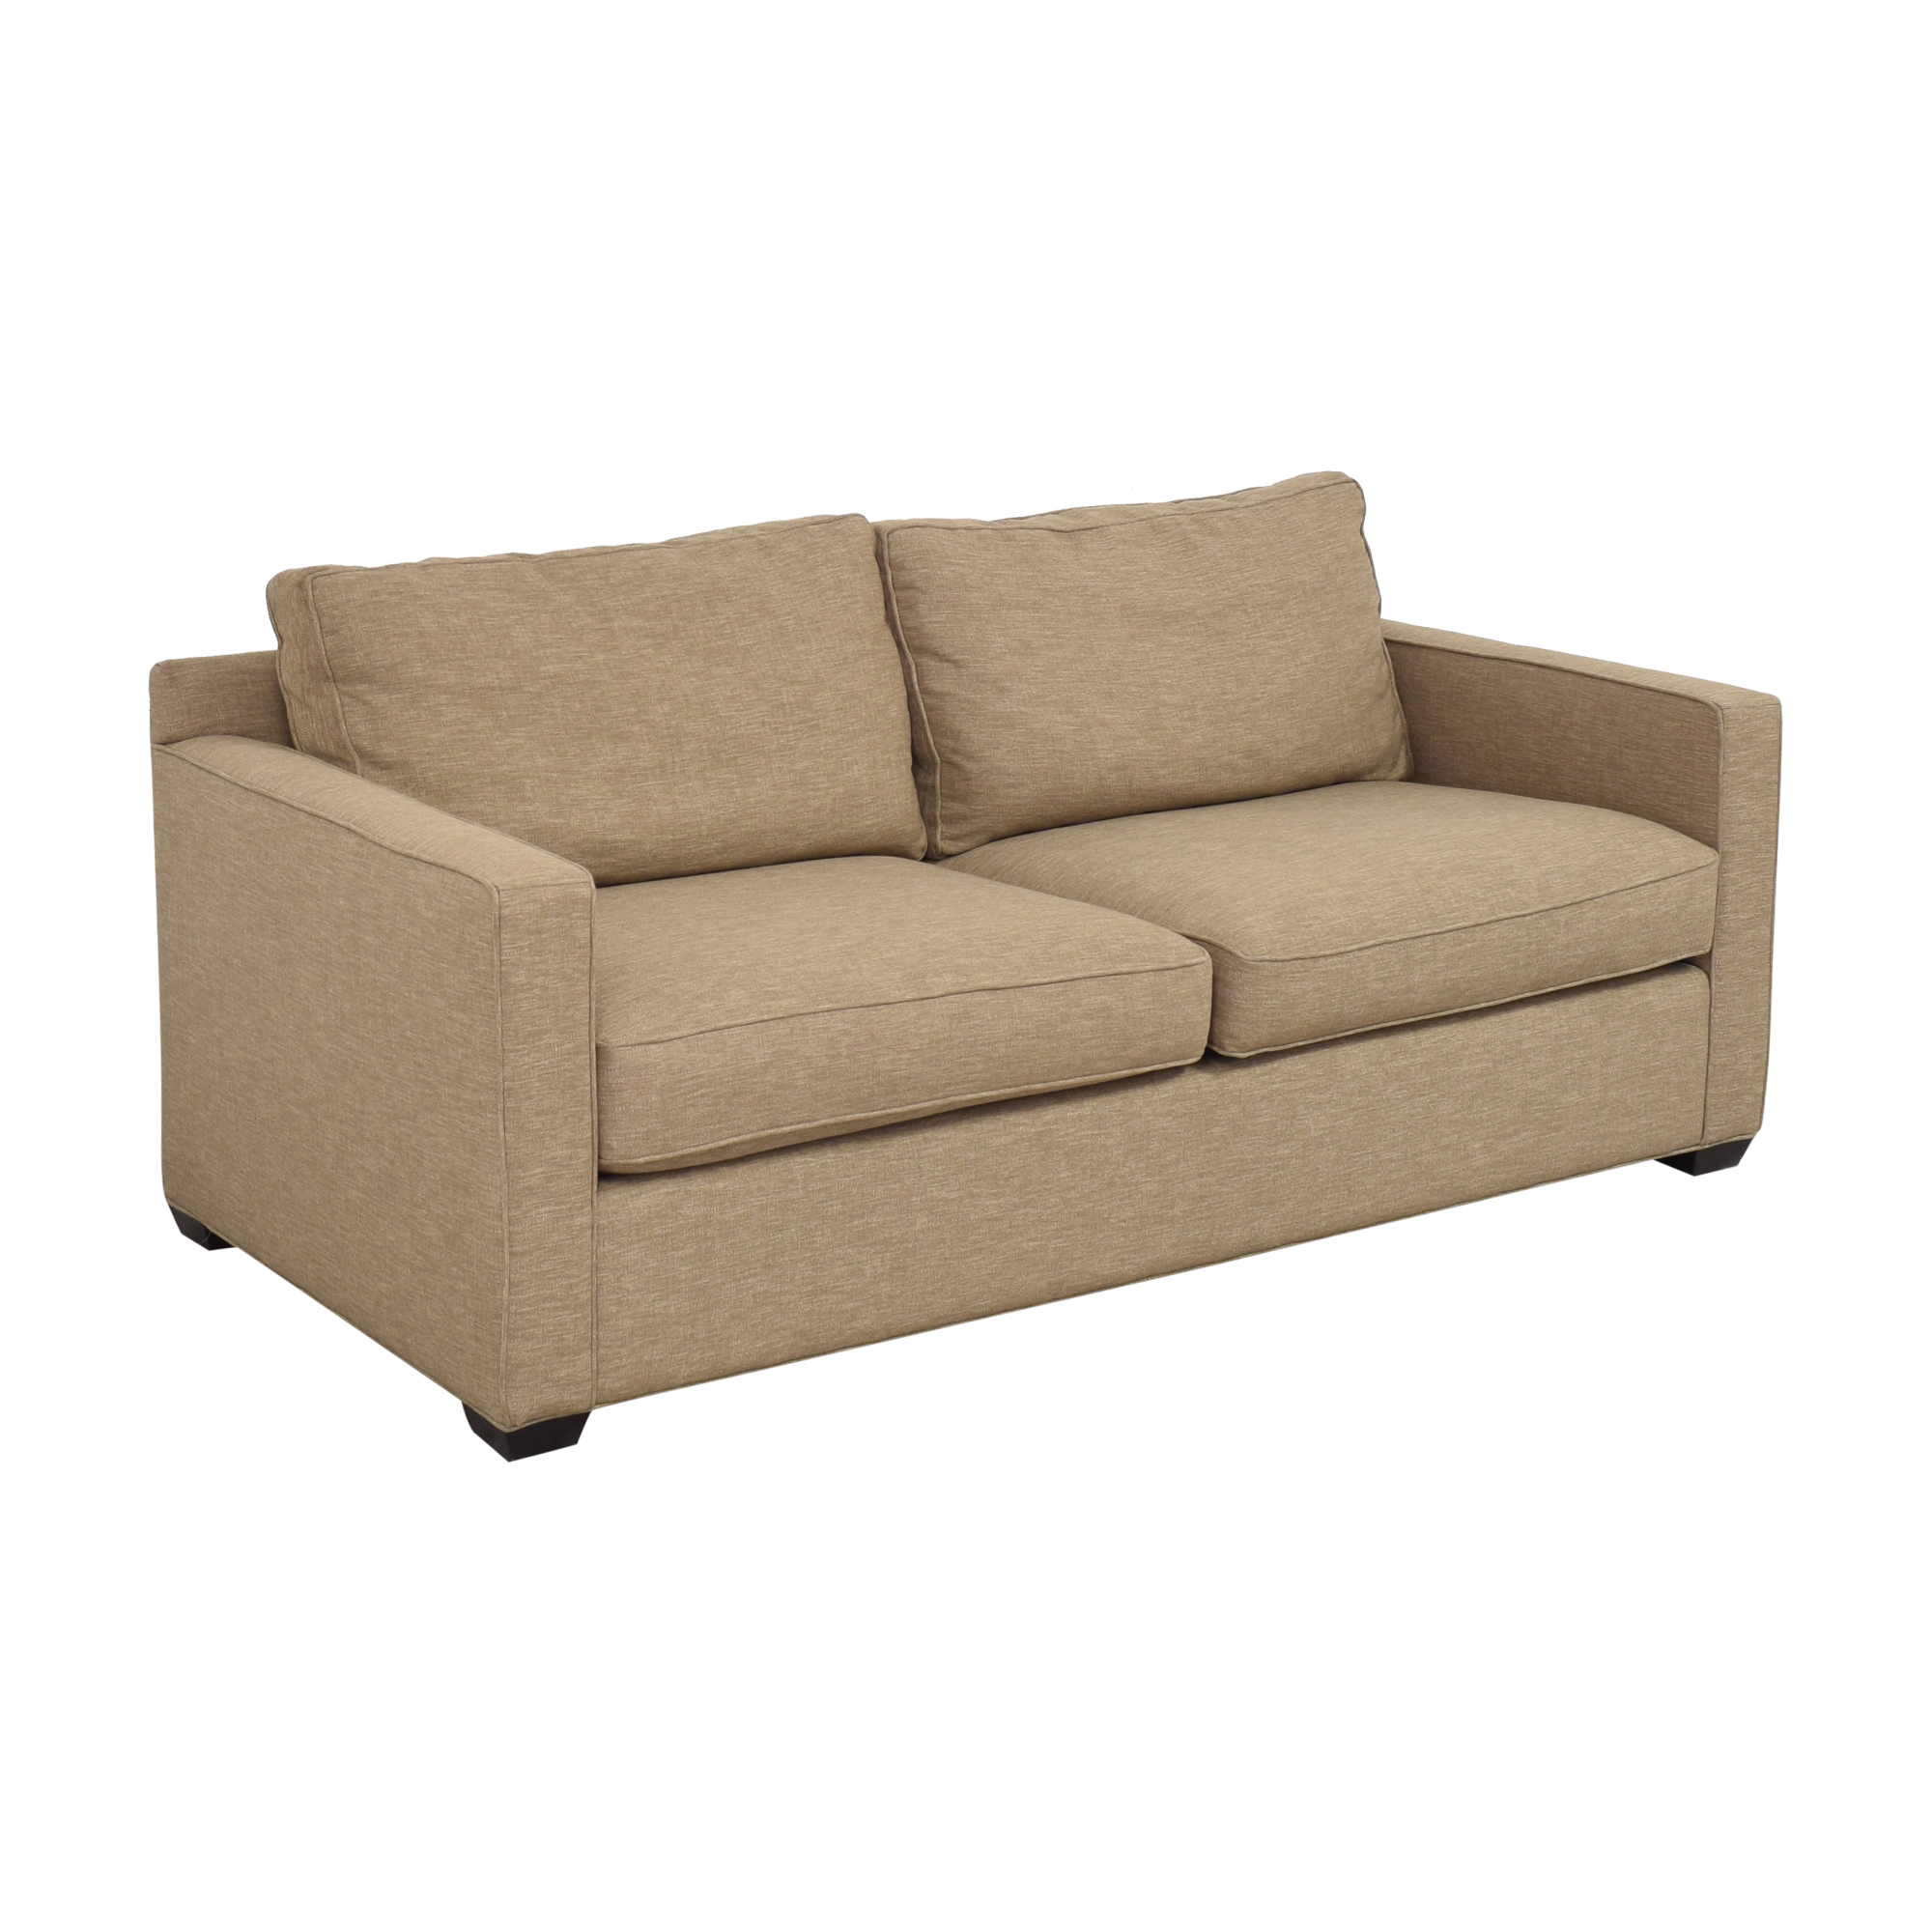 Crate & Barrel Crate & Barrel Davis Track Arm Sofa for sale